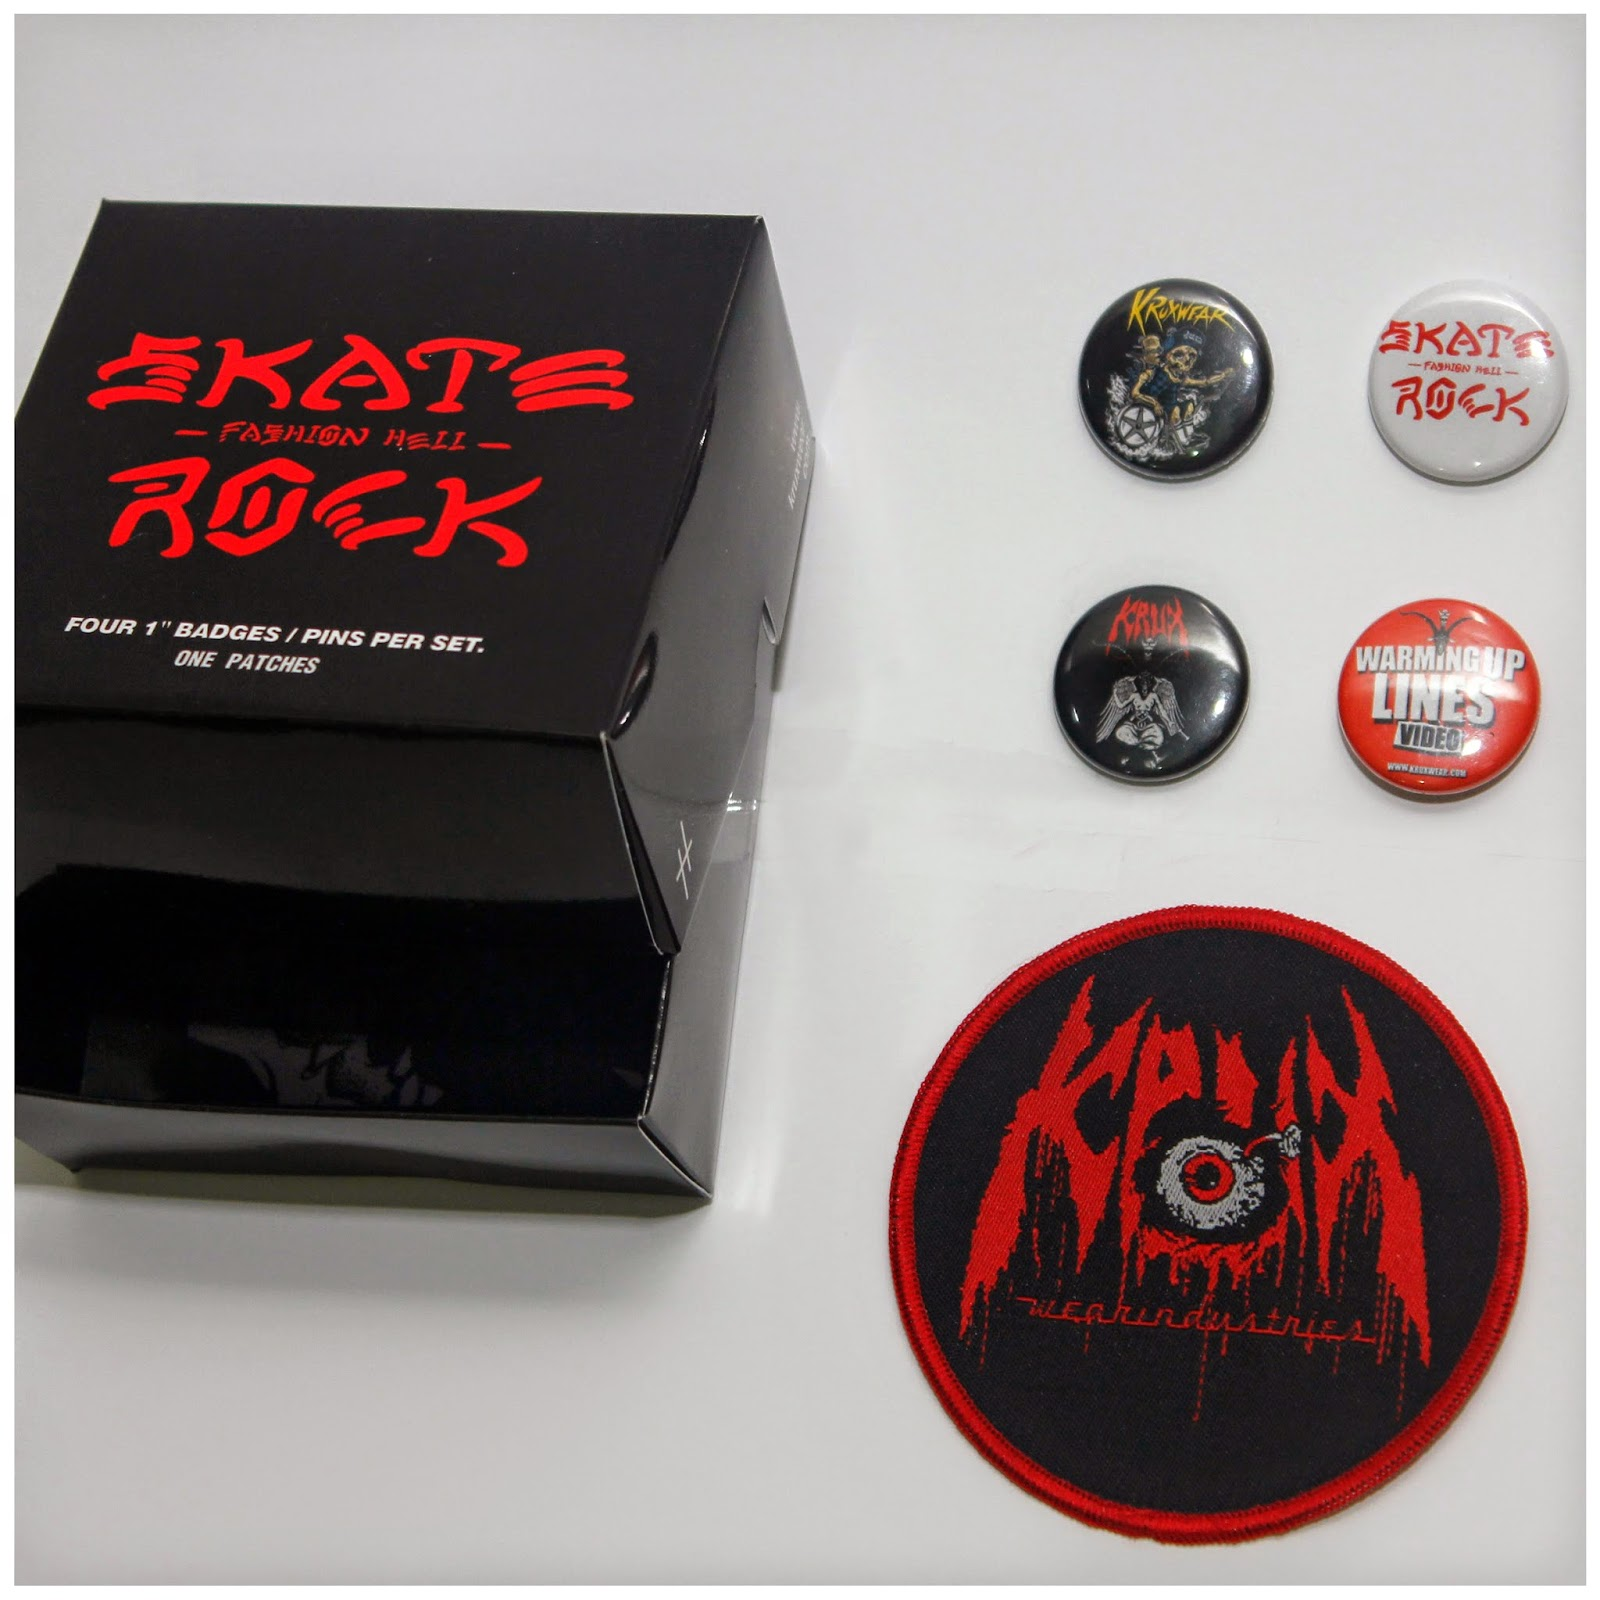 http://kruxwear.blogspot.com/2014/06/kruxwear-4-pack-buttons-and-fiend-patch.html